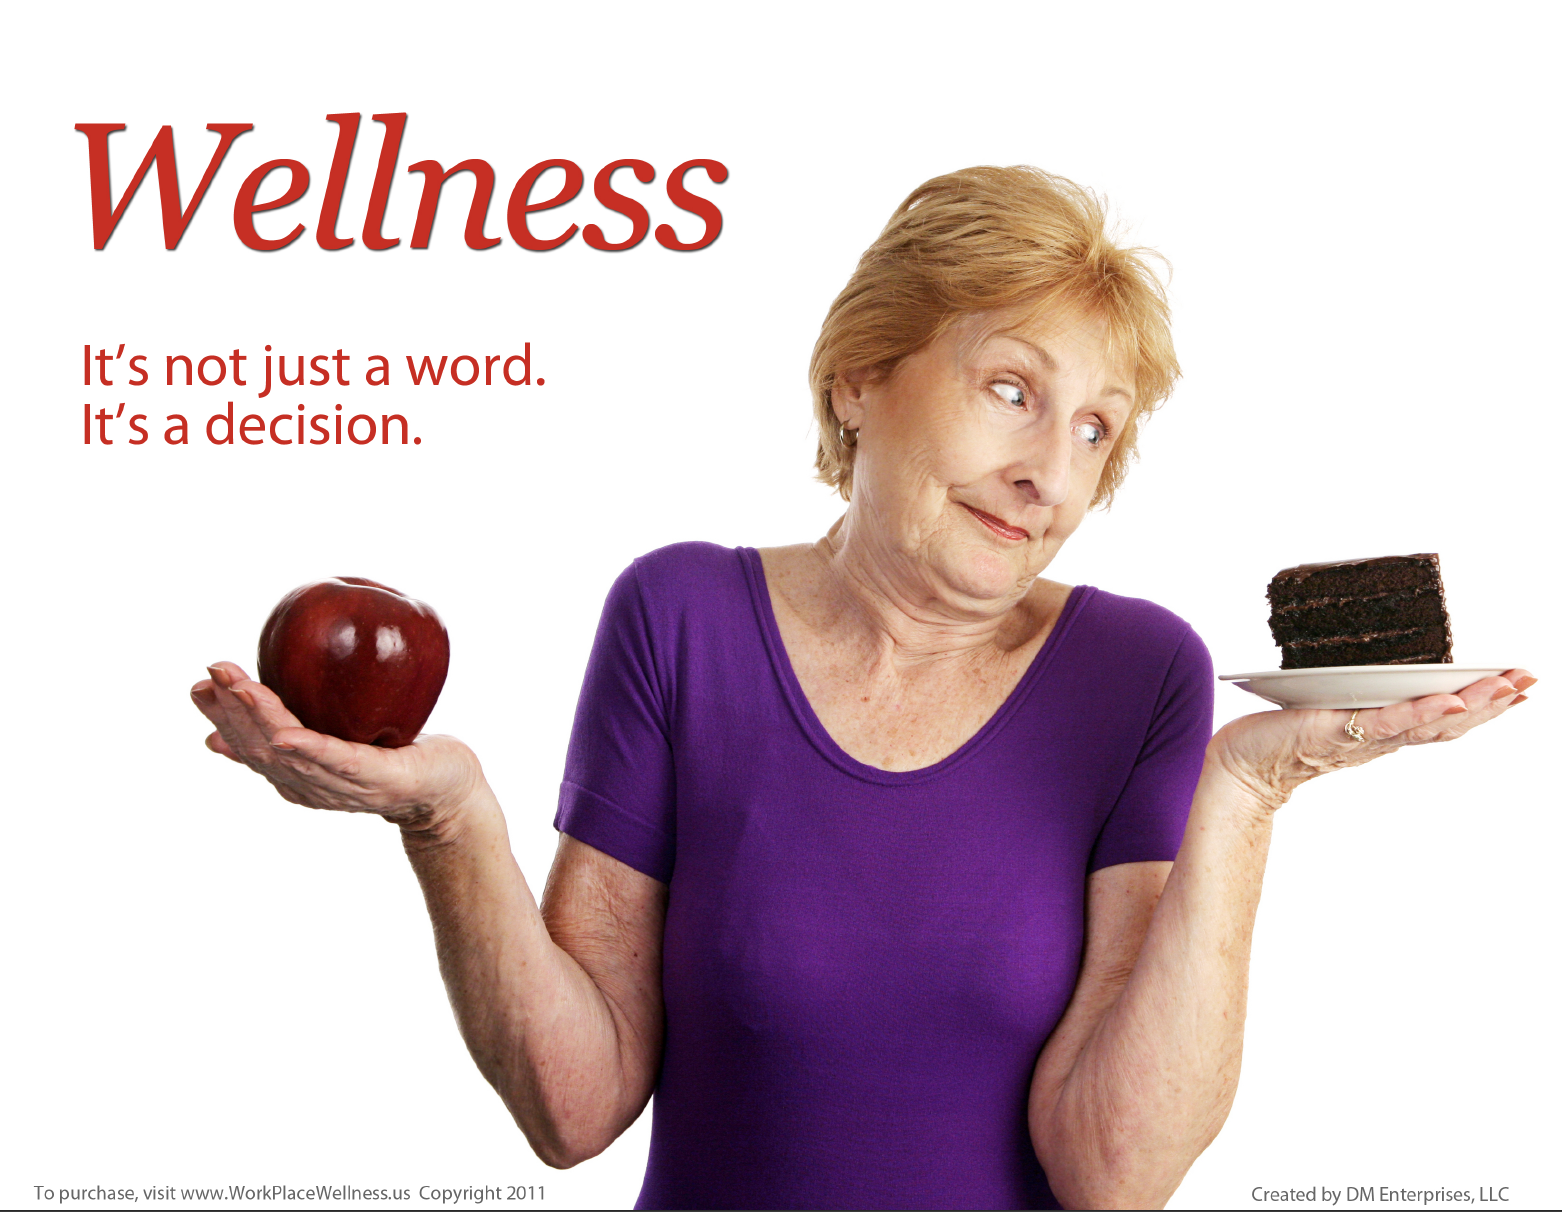 Wellness Decision